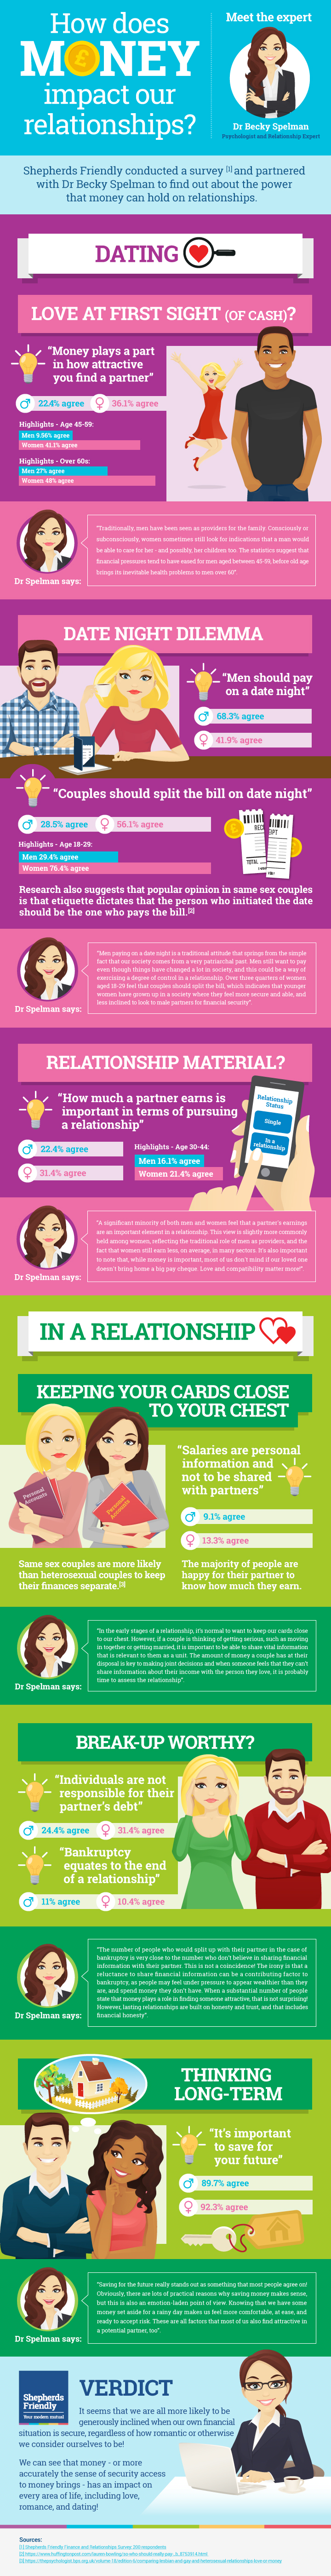 infogrphic how does money impact your relationship